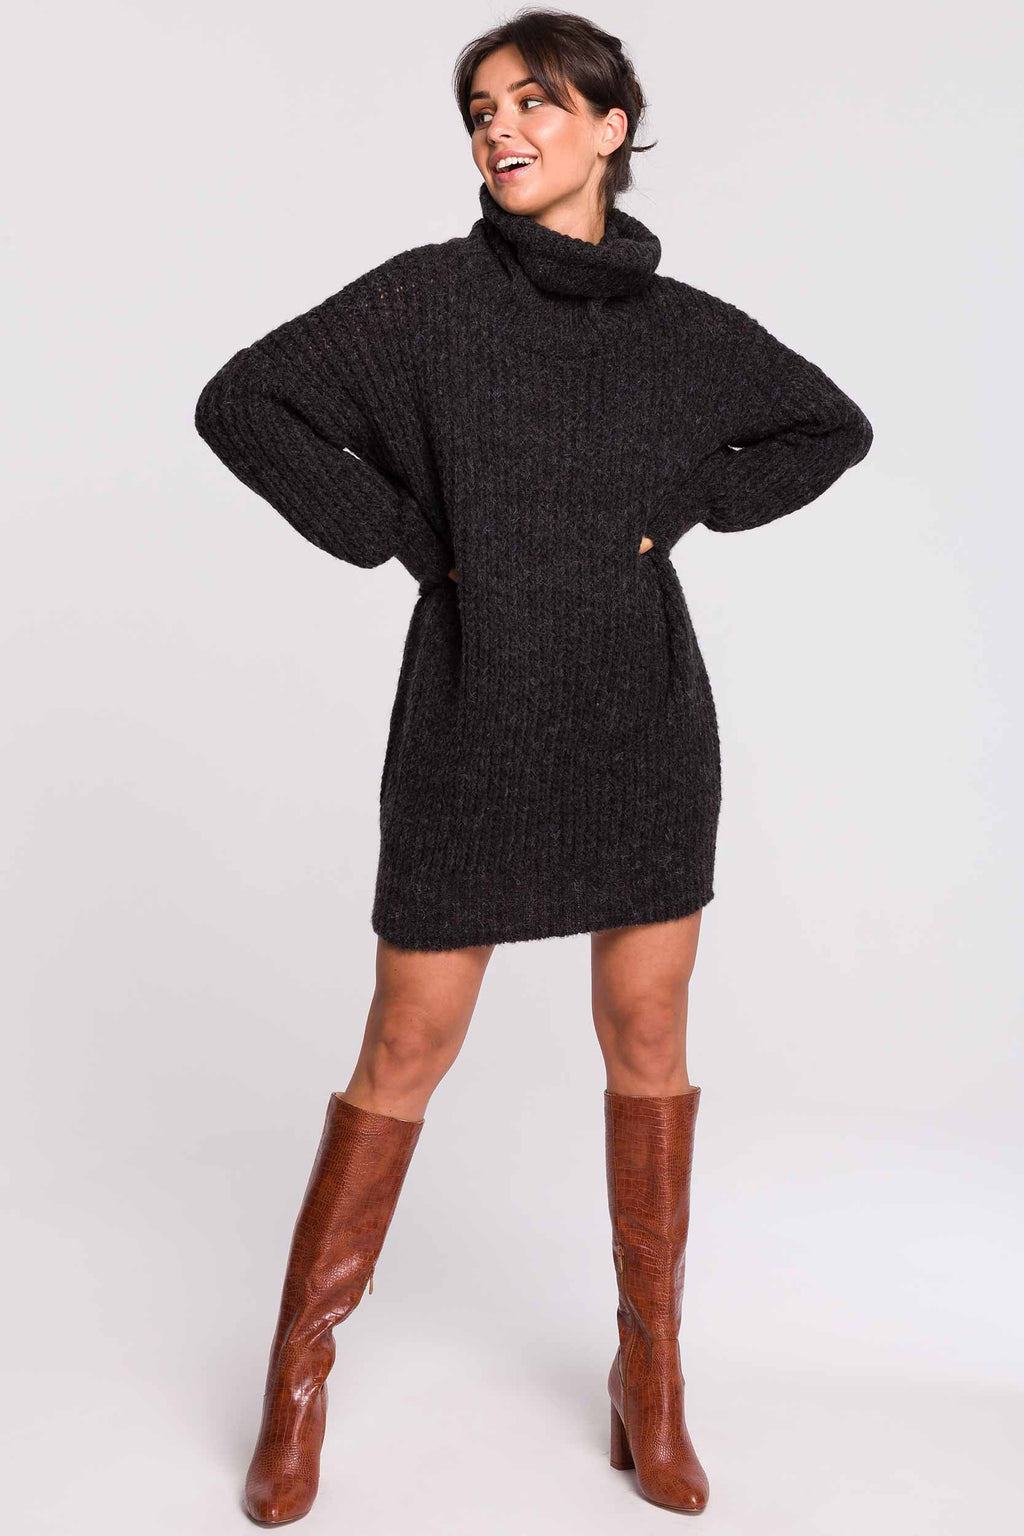 Anthracite Turtleneck Sweater Dress - So Chic Boutique